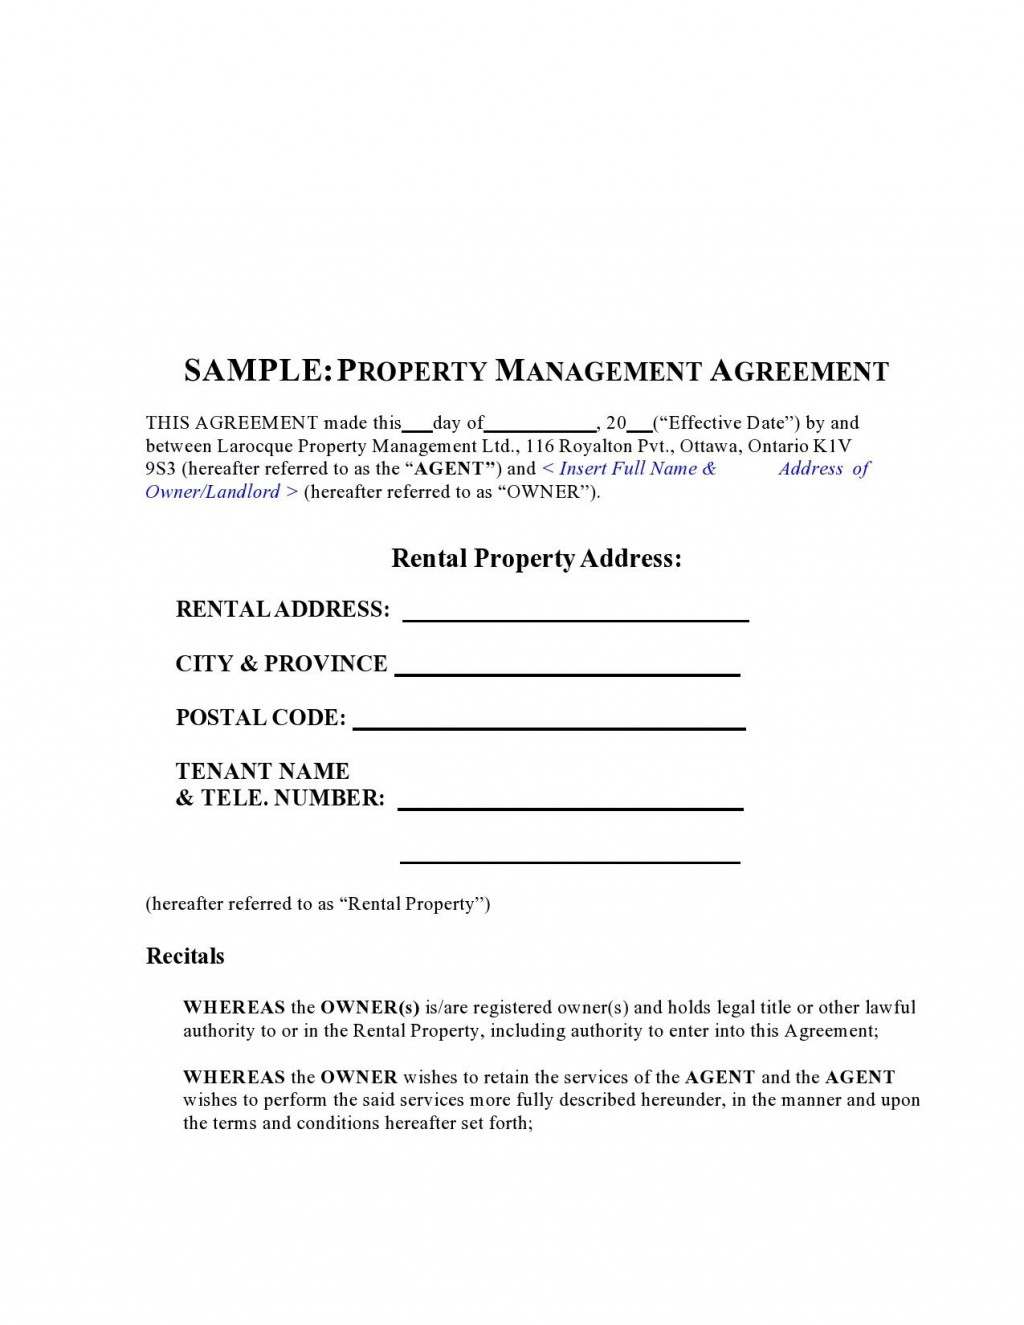 009 Awful Property Management Contract Template Ontario Highest Quality Large